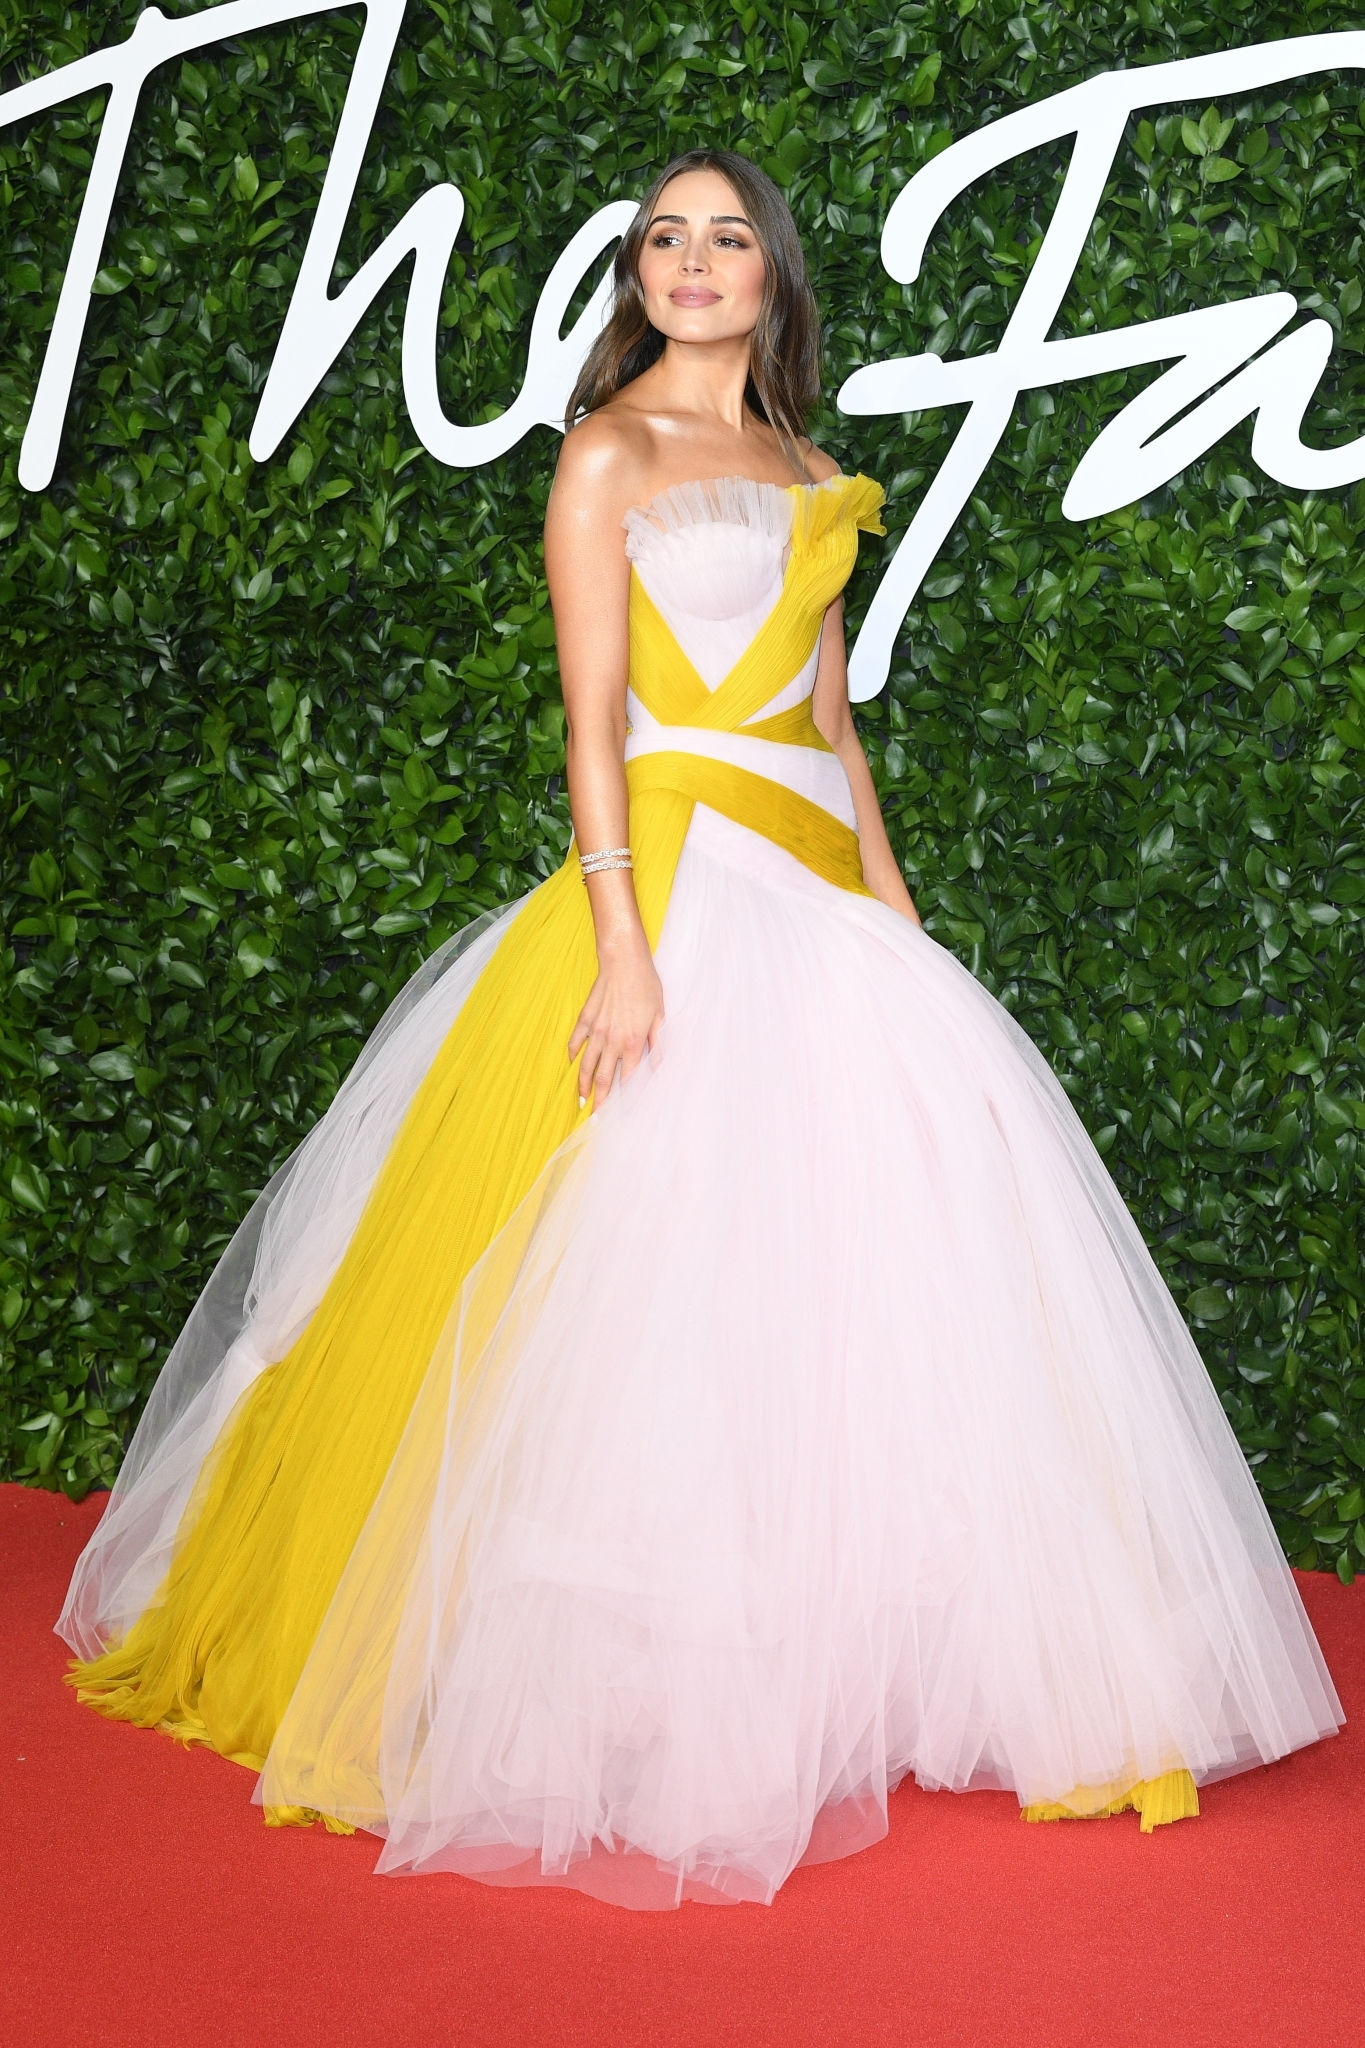 olivia-culpo-in-ralph-russo-couture-2019-british-fashion-council-awards